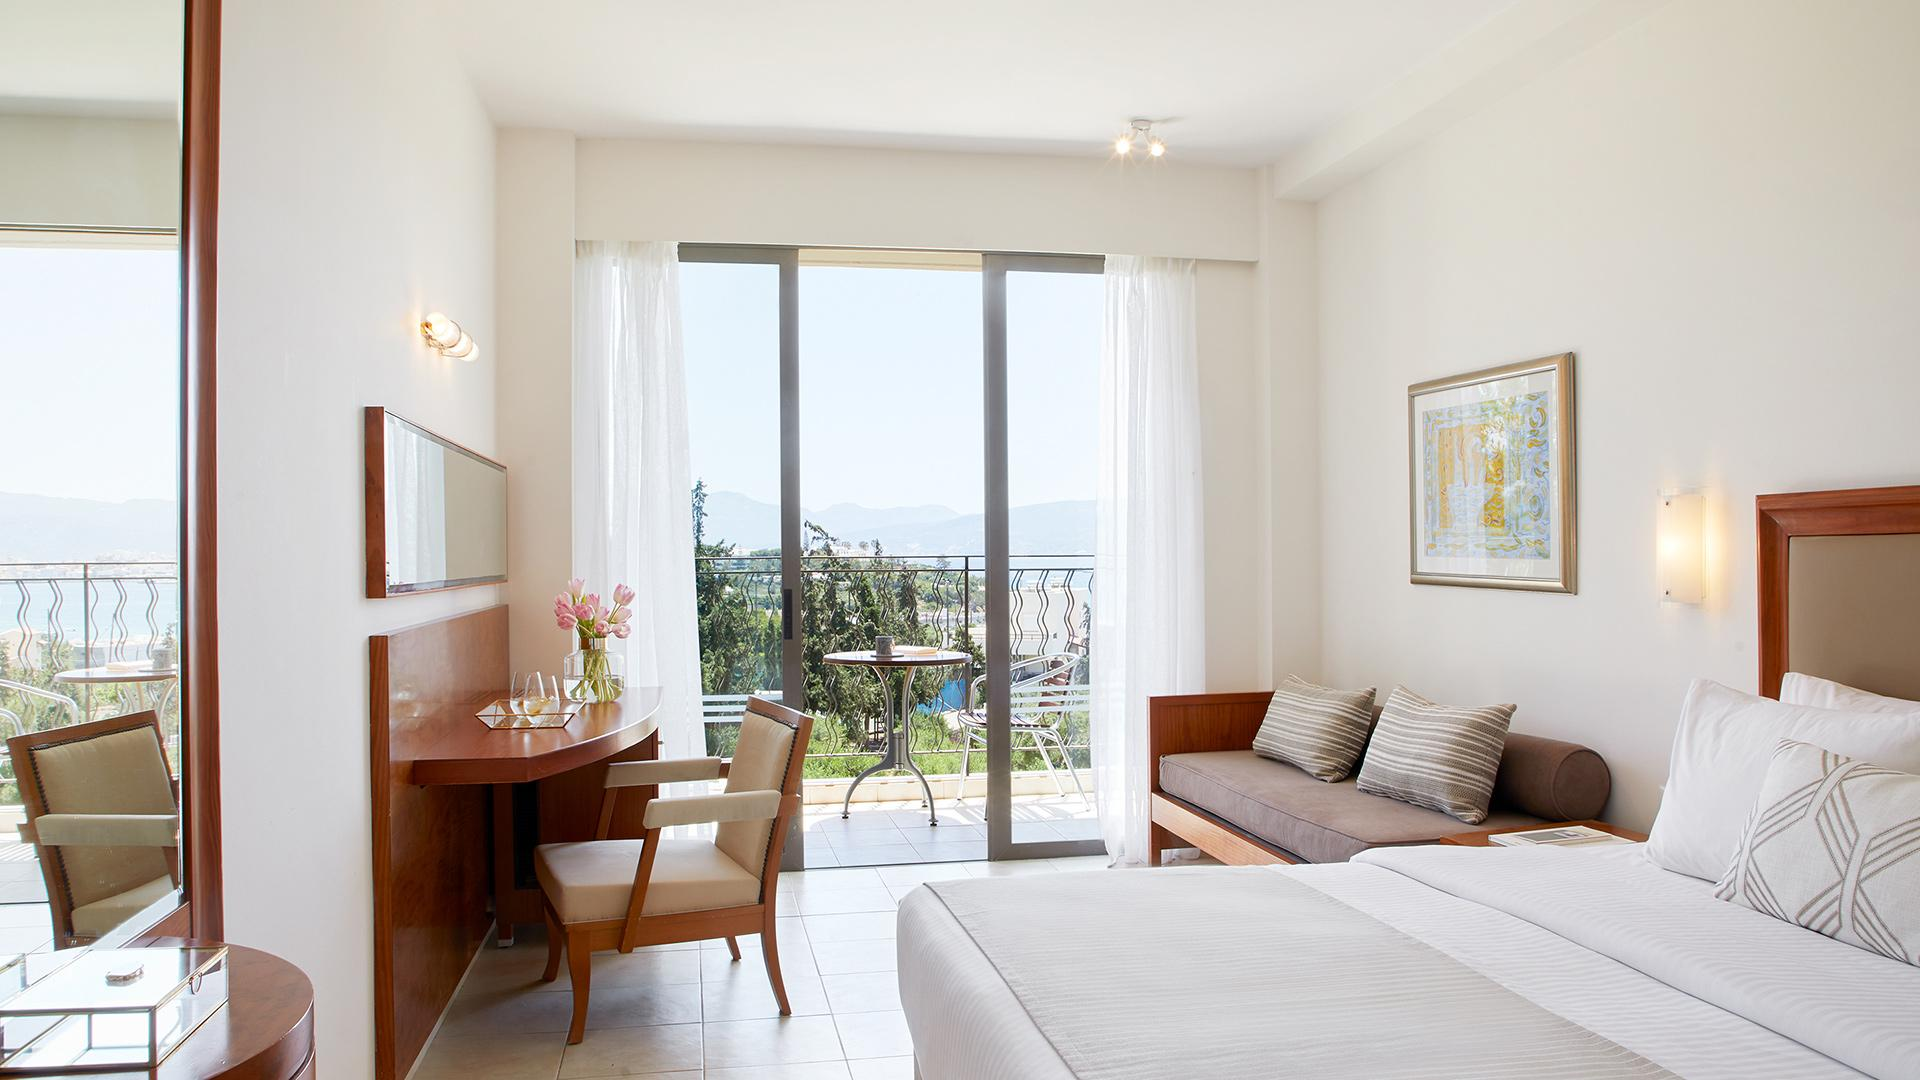 Deluxe Double Room with Garden View image 1 at Wyndham Grand Crete Mirabello Bay by null, null, Greece